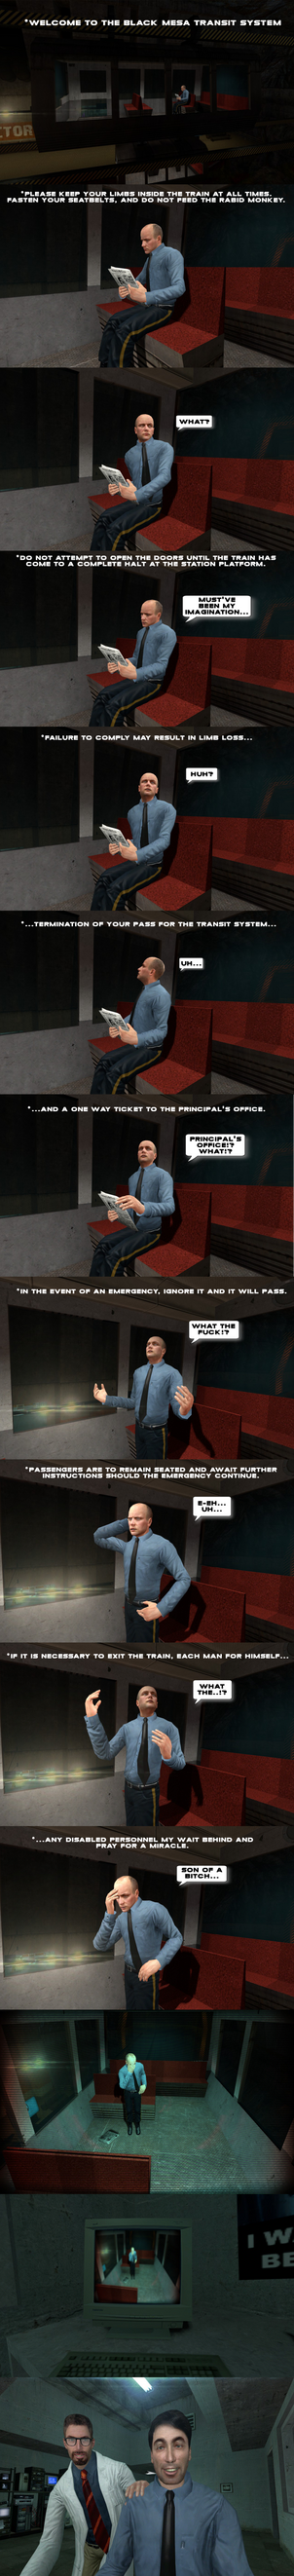 Black Mesa Days: Transit System by DarkMario2